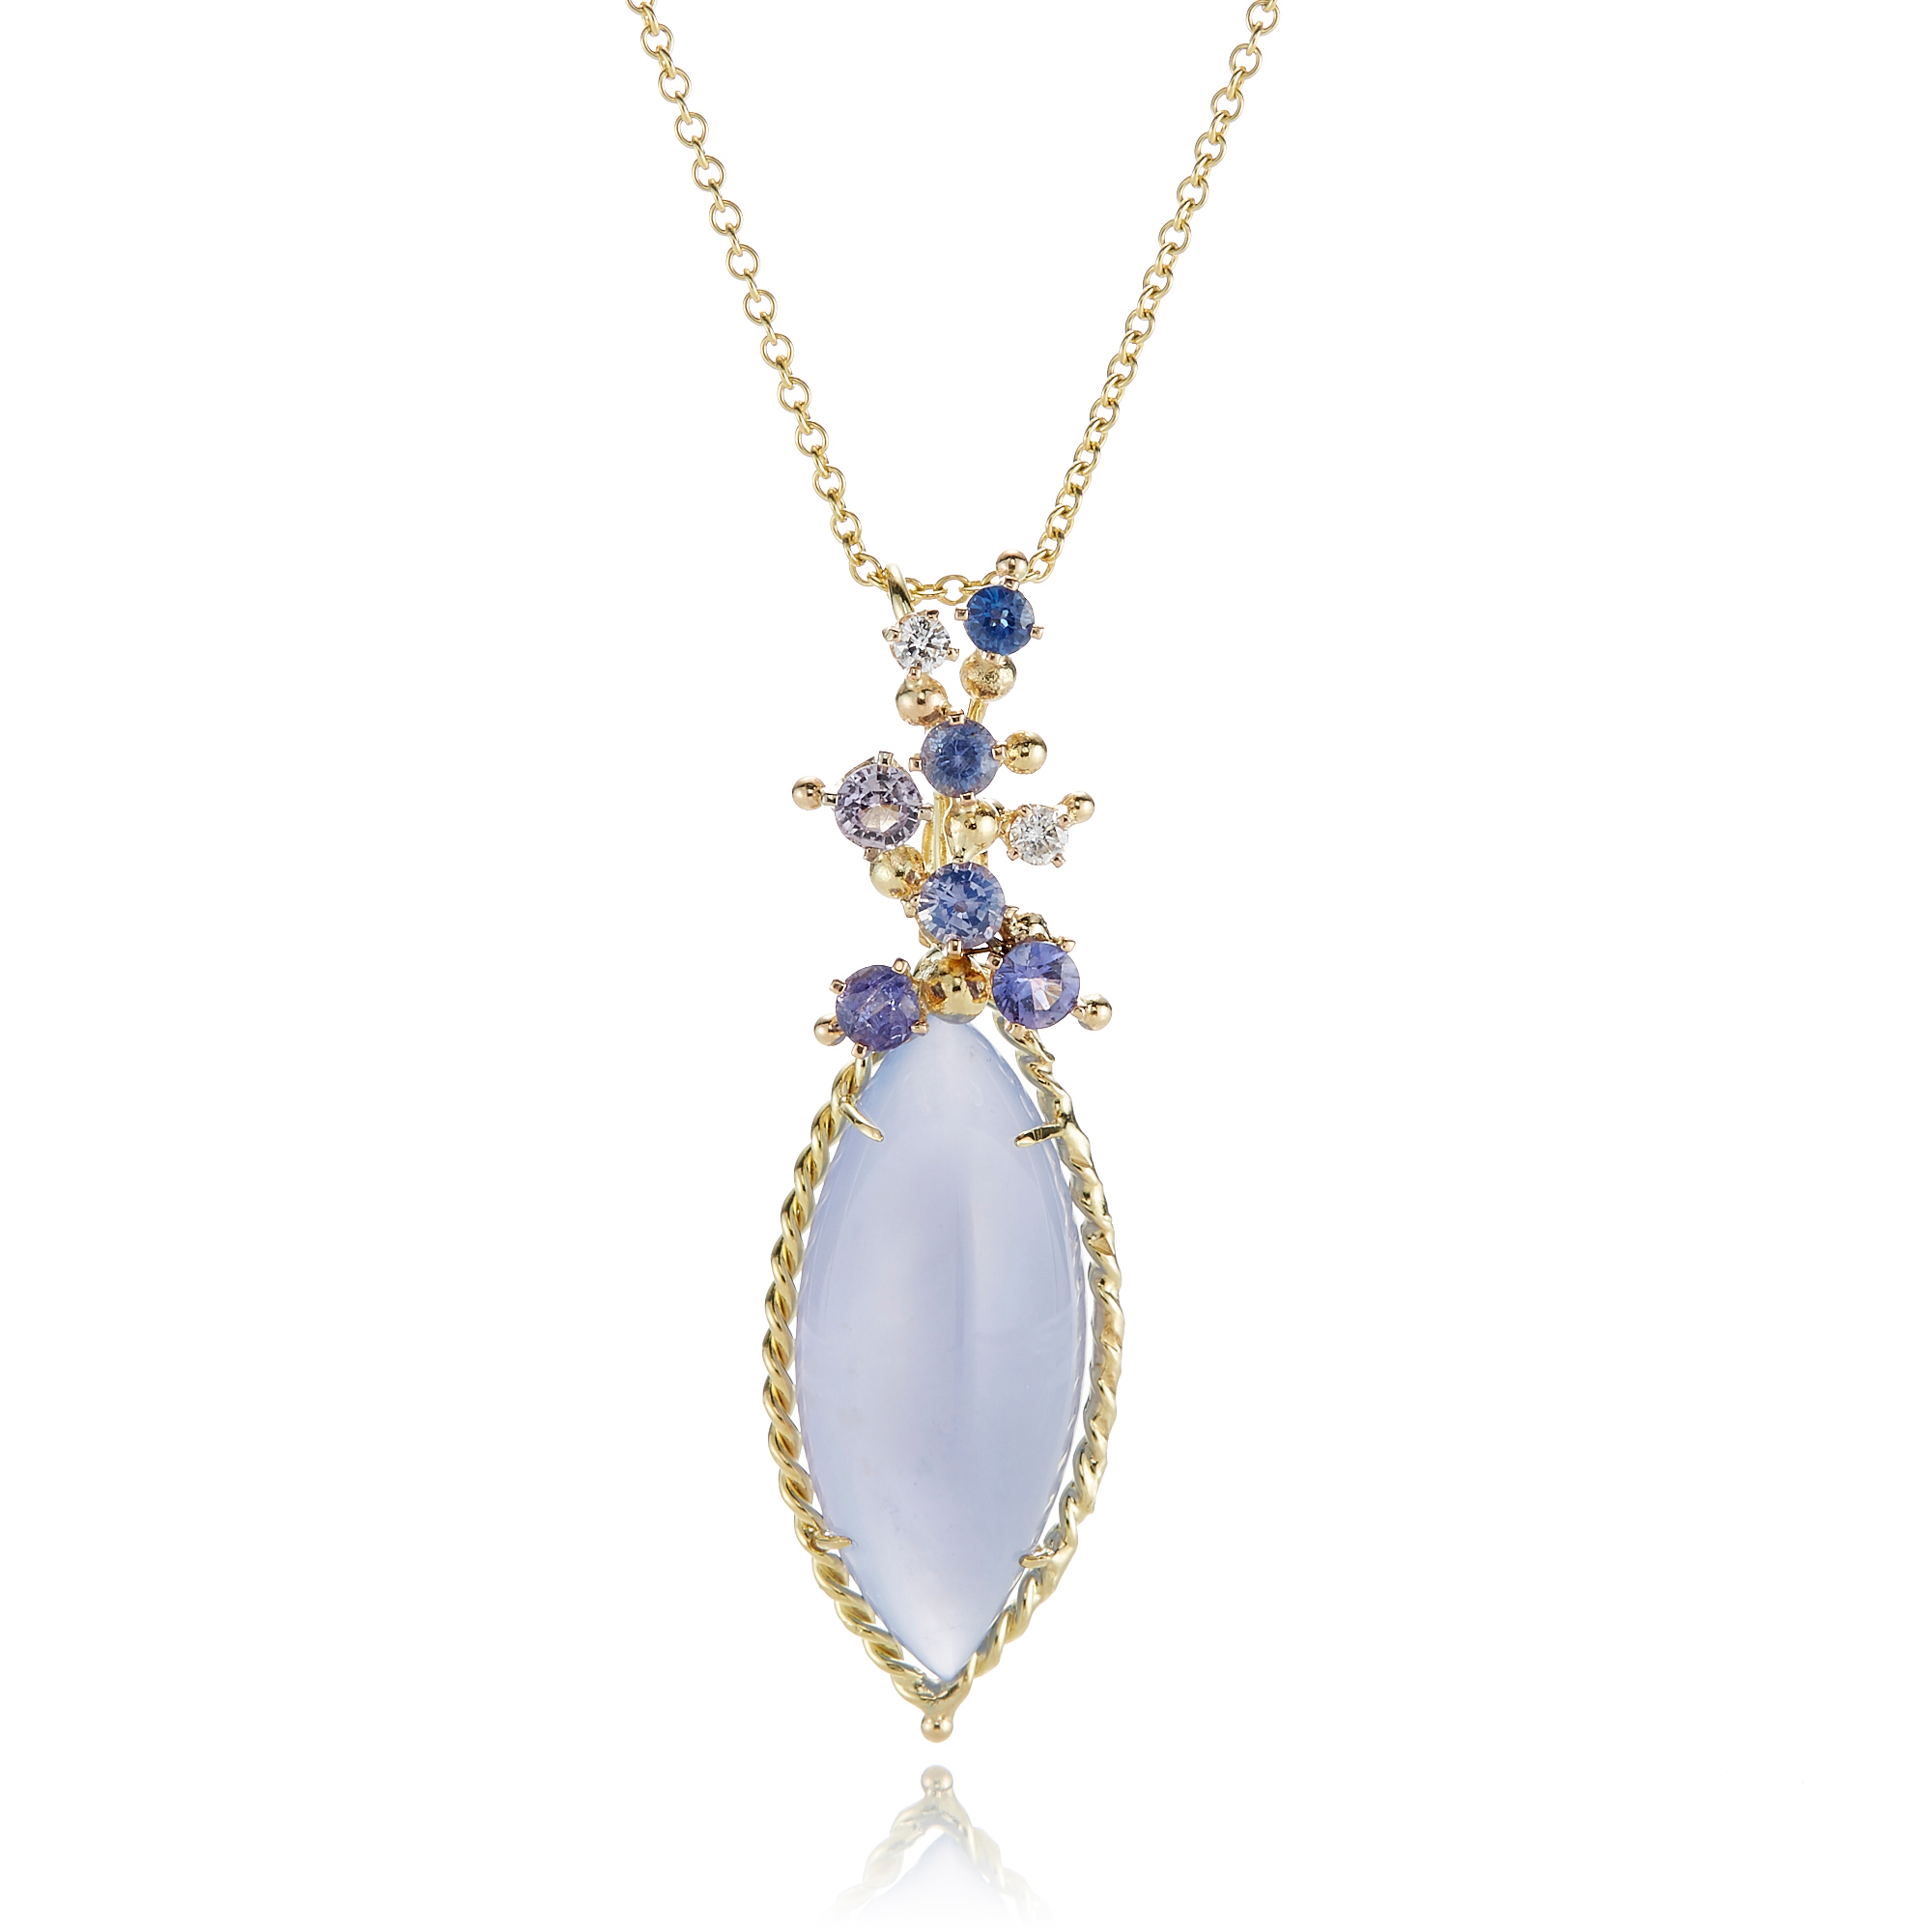 Russell Trusso Chalcedony Navette With Floral Cluster Necklace